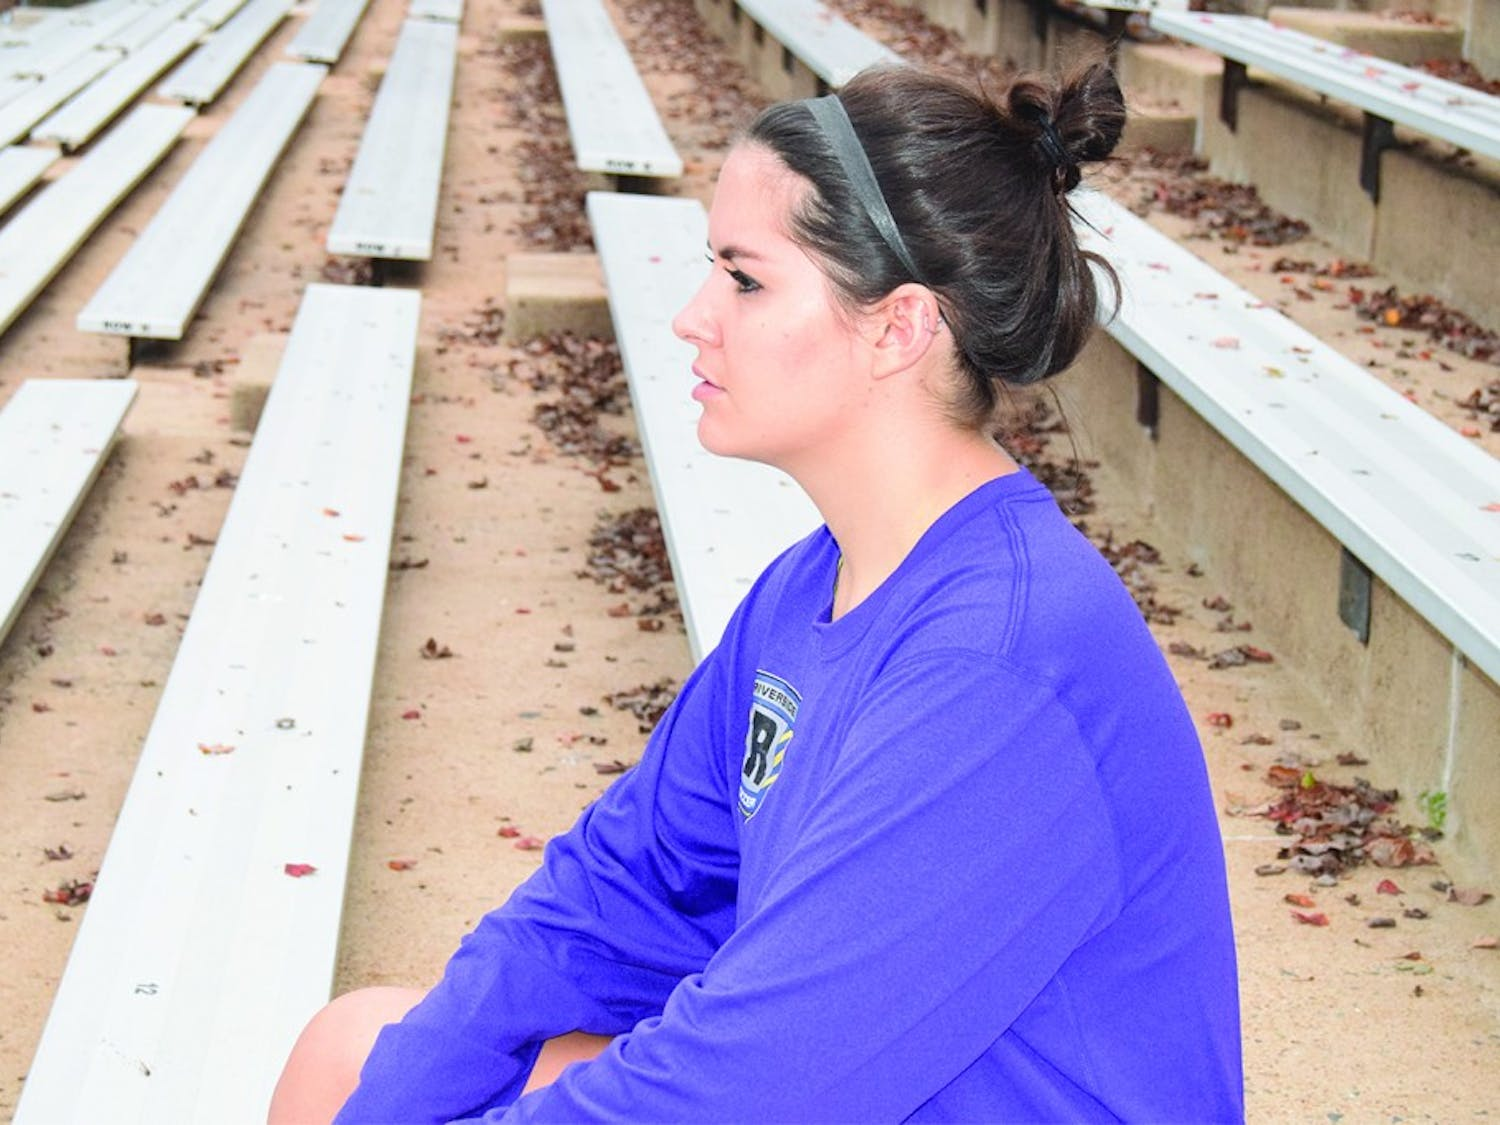 Kathryn Thacker, a first year public policy major from Durham, was at sidelined from soccer with a concussion in 2015.